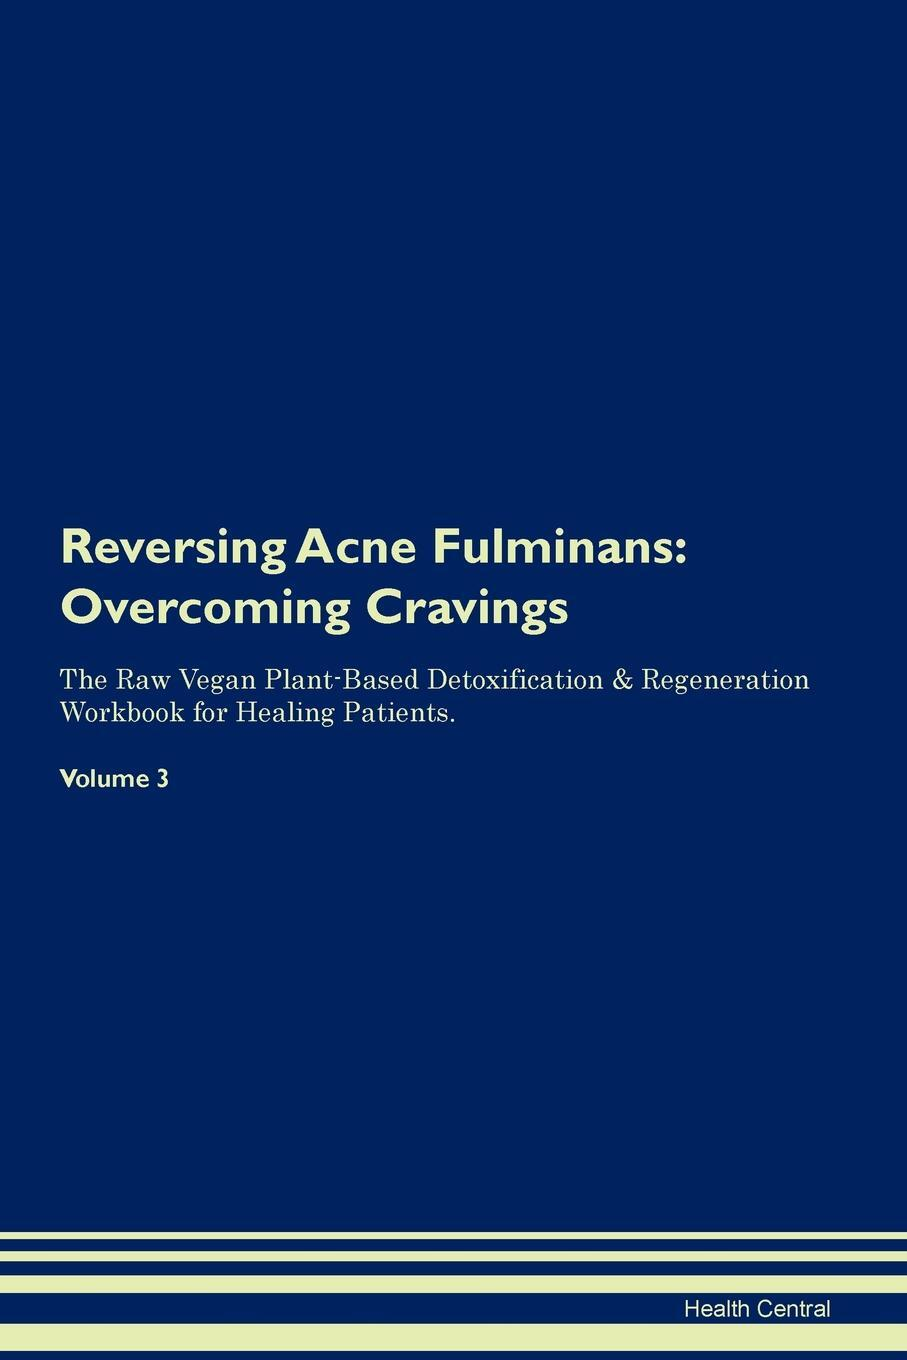 Reversing Acne Fulminans. Overcoming Cravings The Raw Vegan Plant-Based Detoxification & Regeneration Workbook for Healing Patients. Volume 3